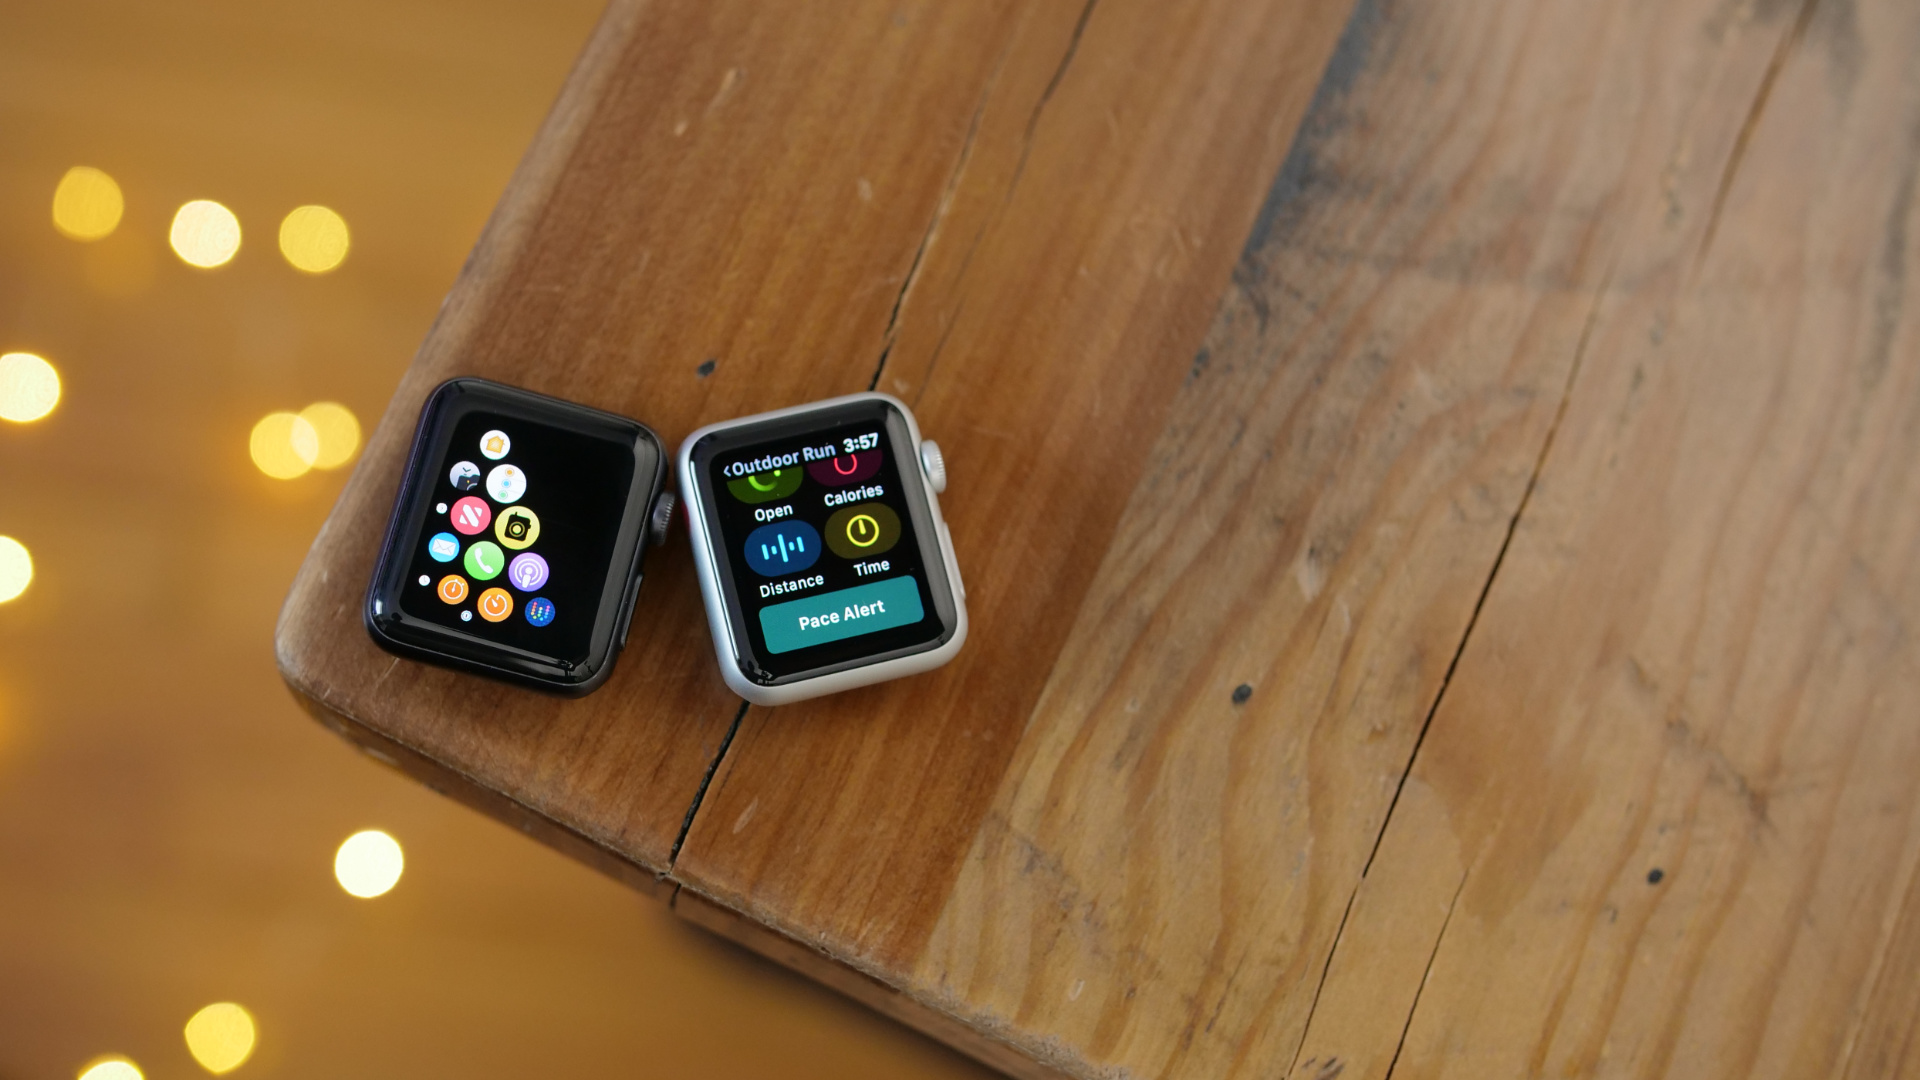 watchos 5 developer beta 4 for apple watch now available